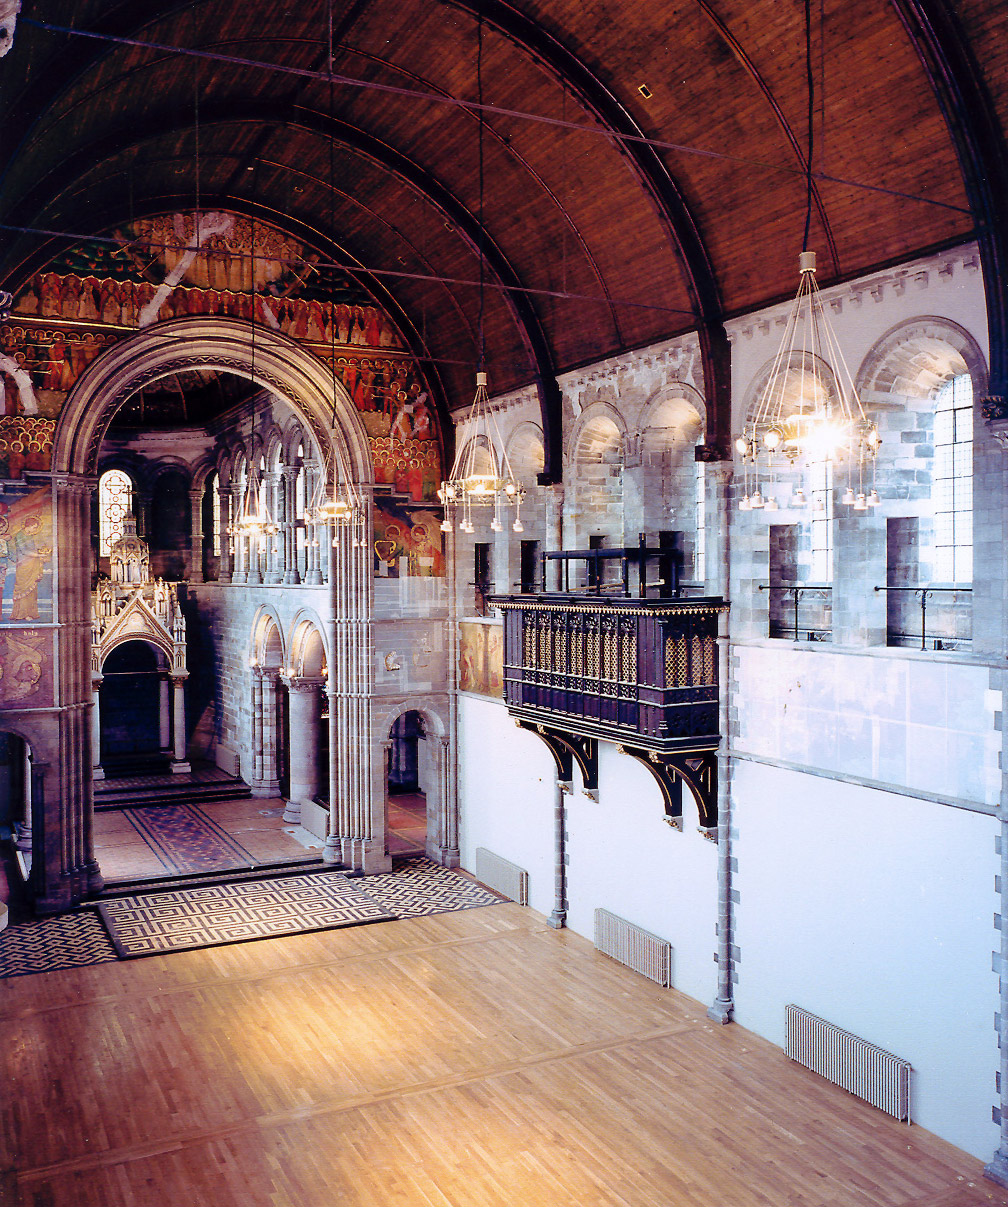 Rebuild and conservation of organ housing, Mansfield Traquair, Edinburgh.